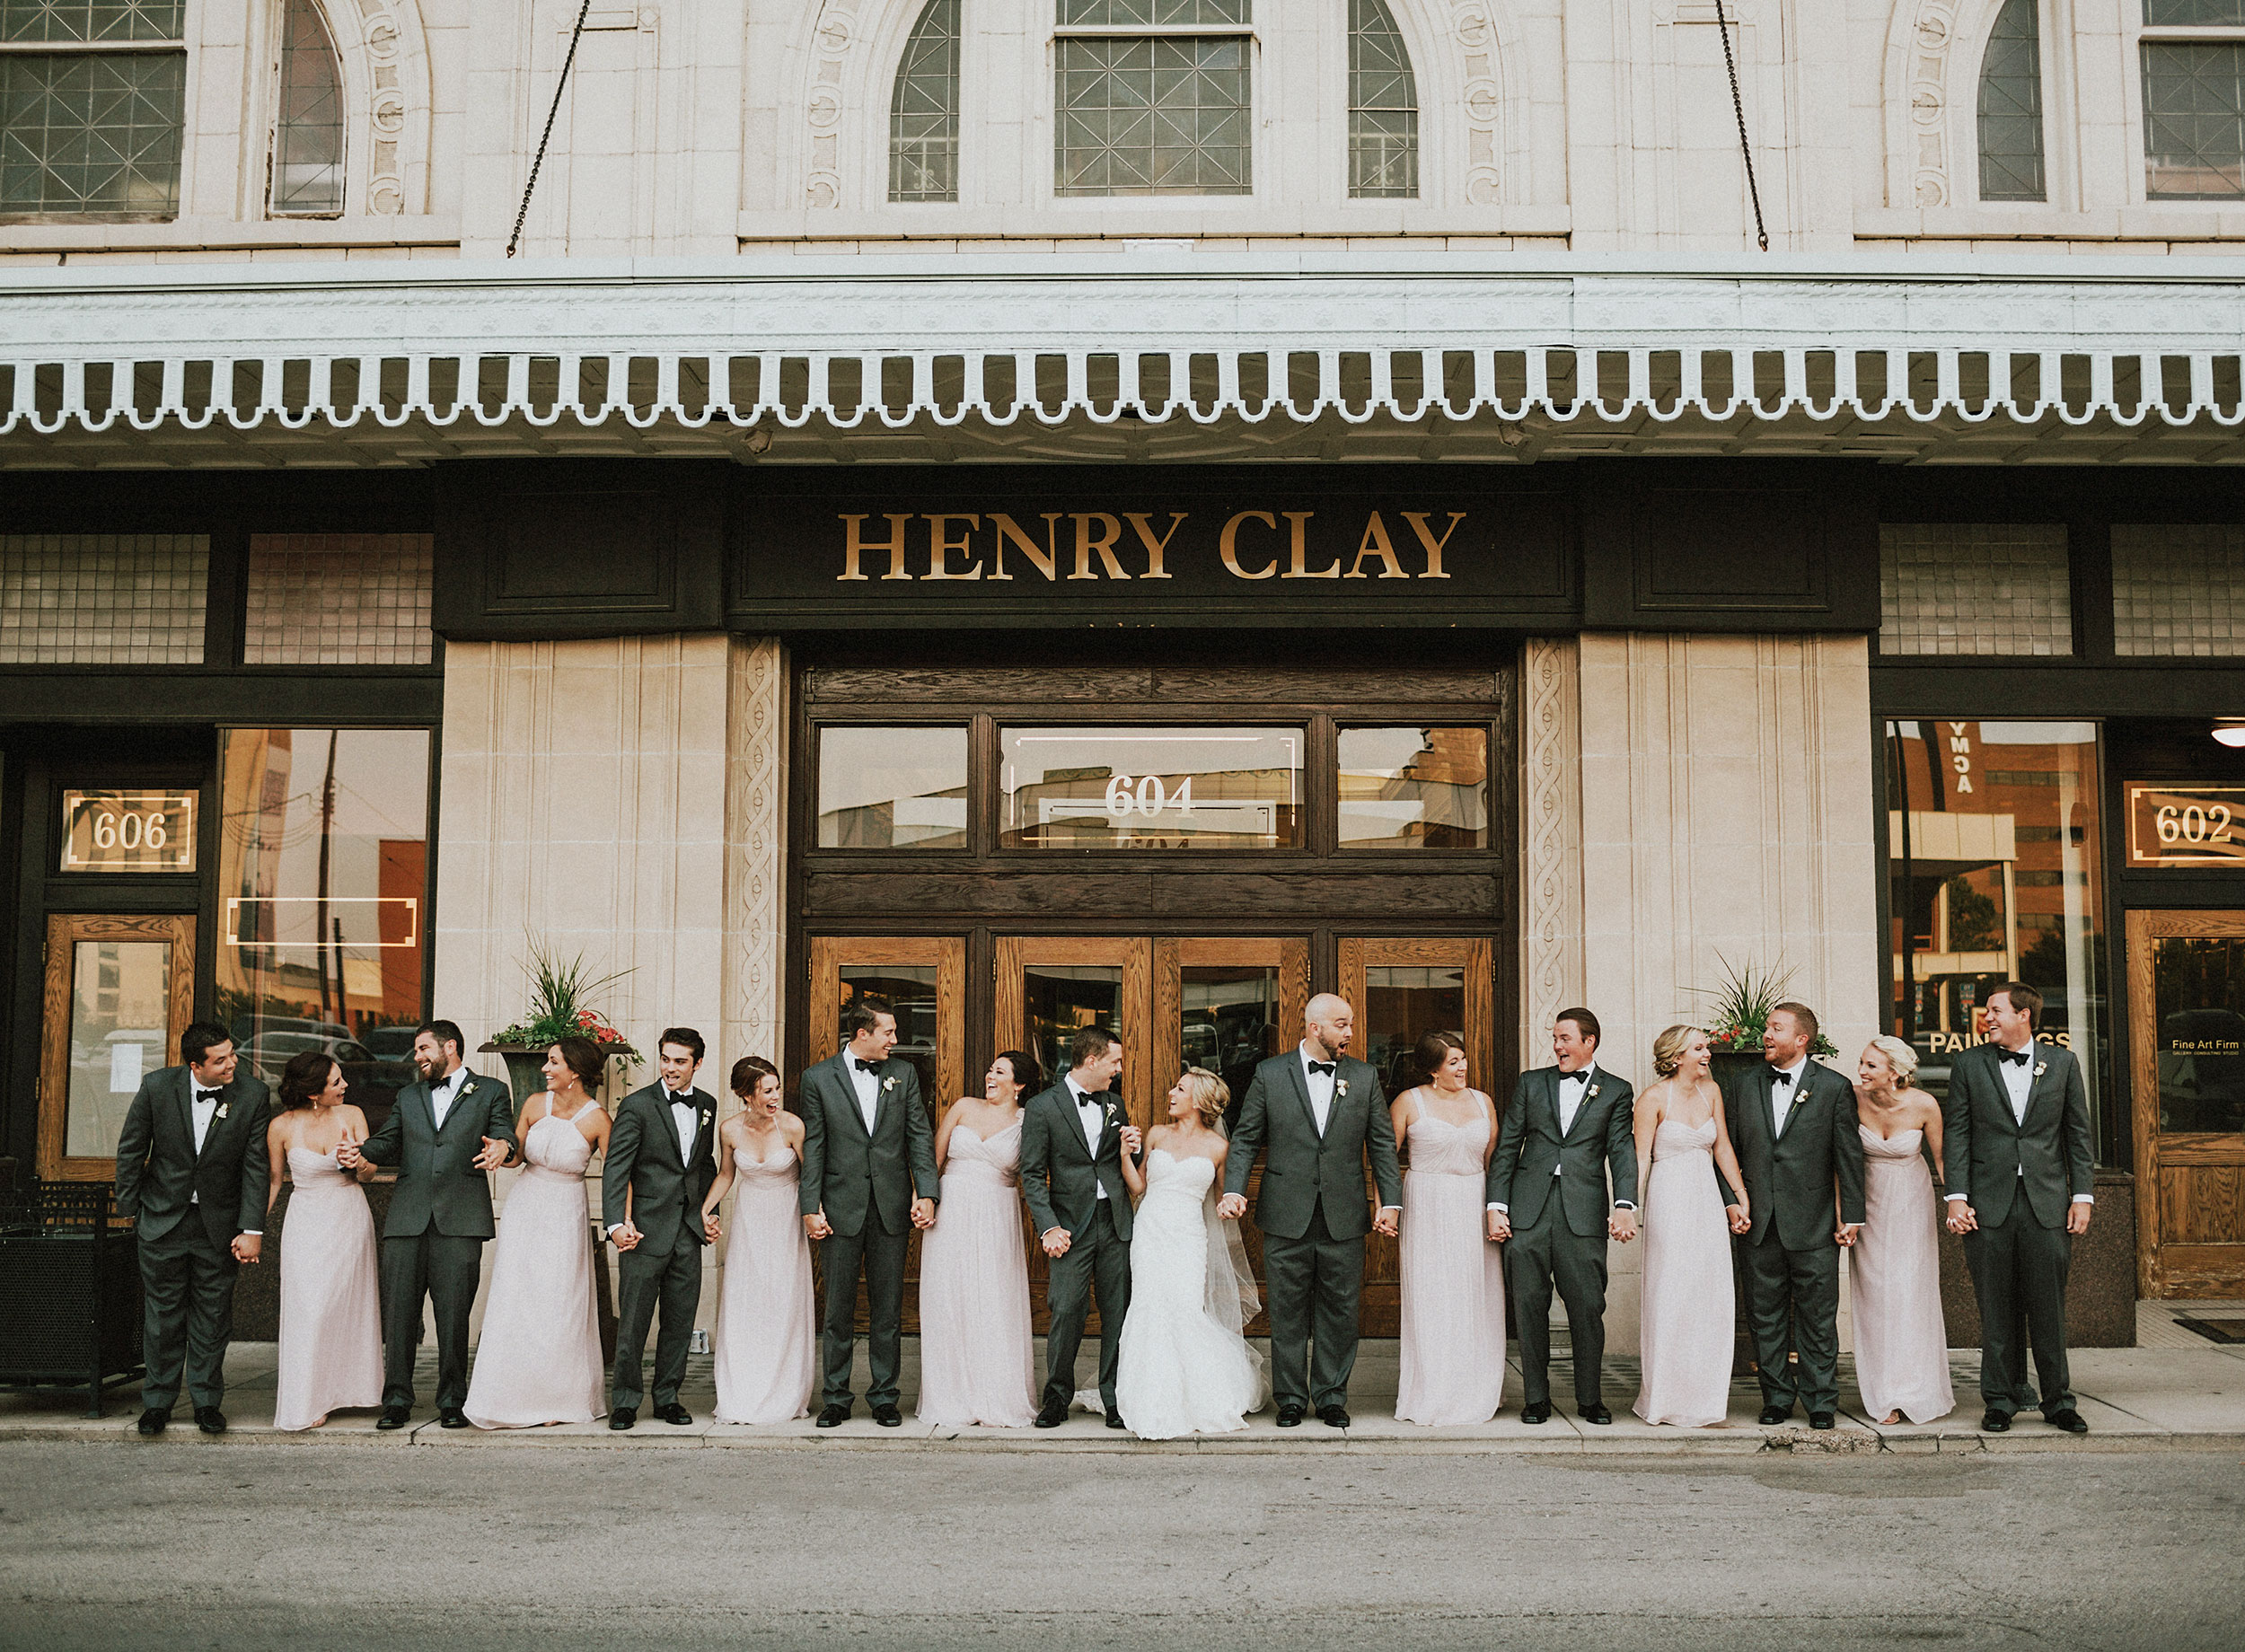 louisville-wedding-photographer-henry-clay-028.JPG